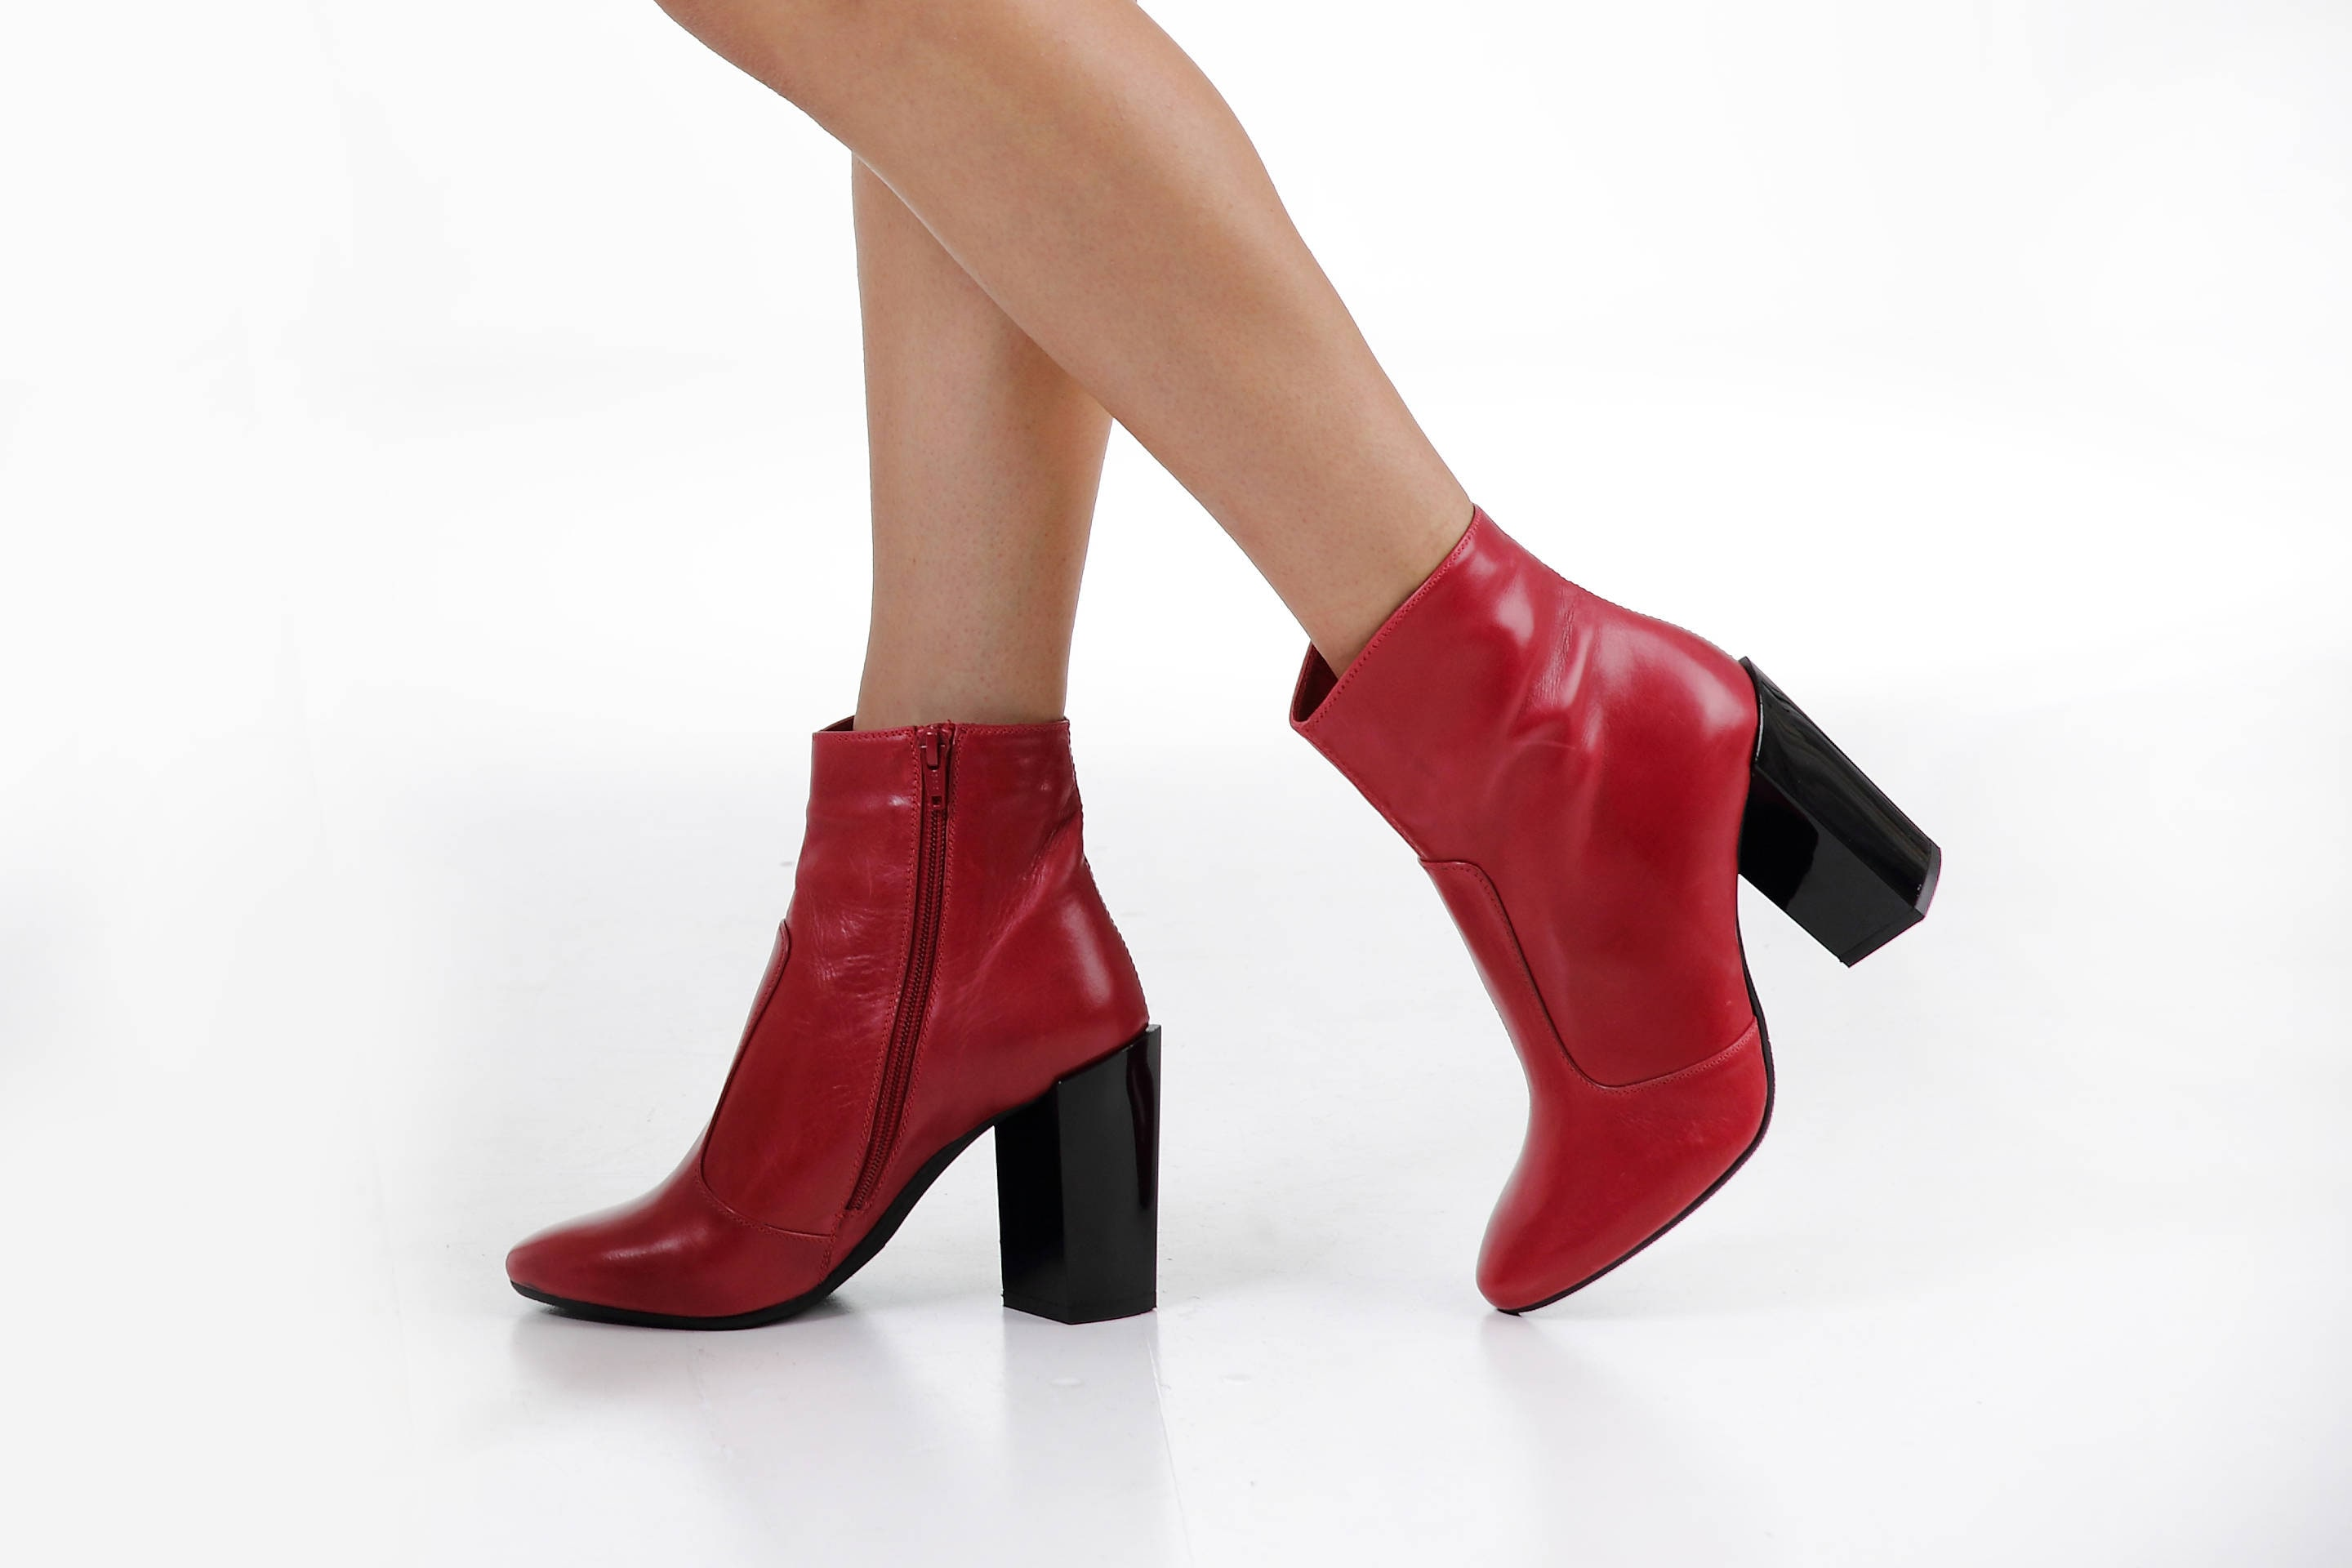 c1e2994b25dcd Elegant women's boots Red ankle boots Genuine leather   Etsy